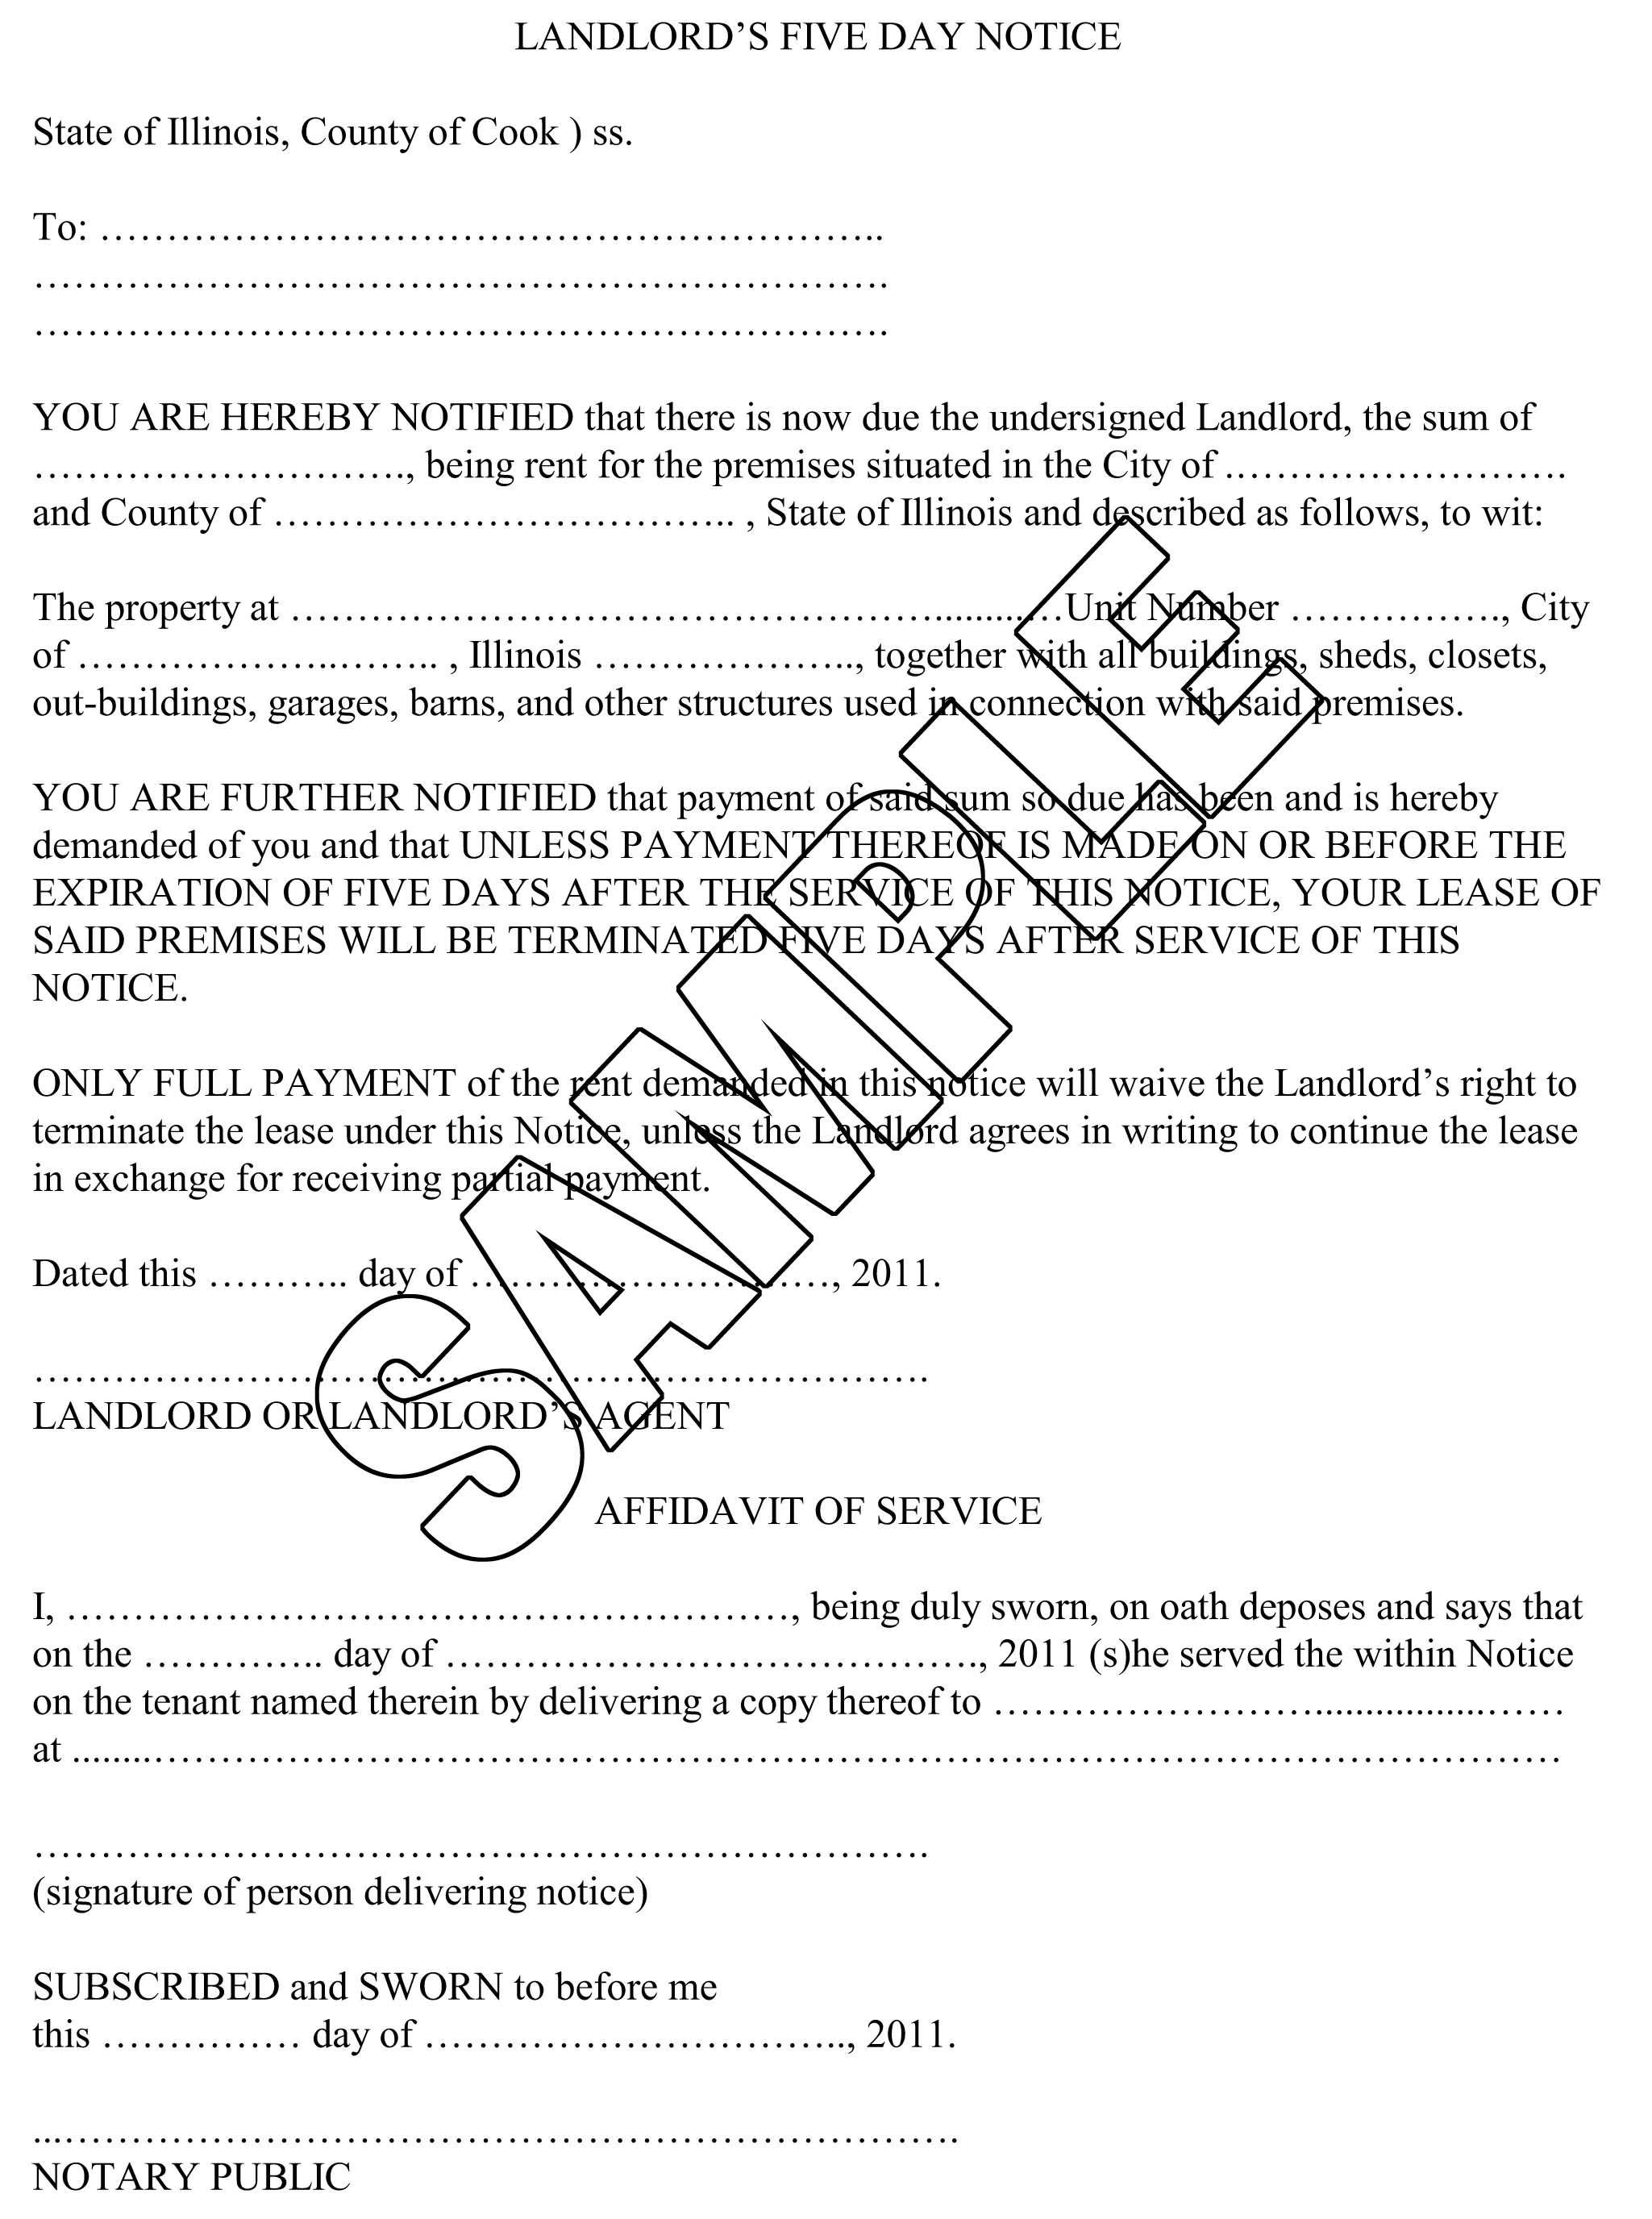 Landlord Letter To Vacate from cevictionp.wpengine.com